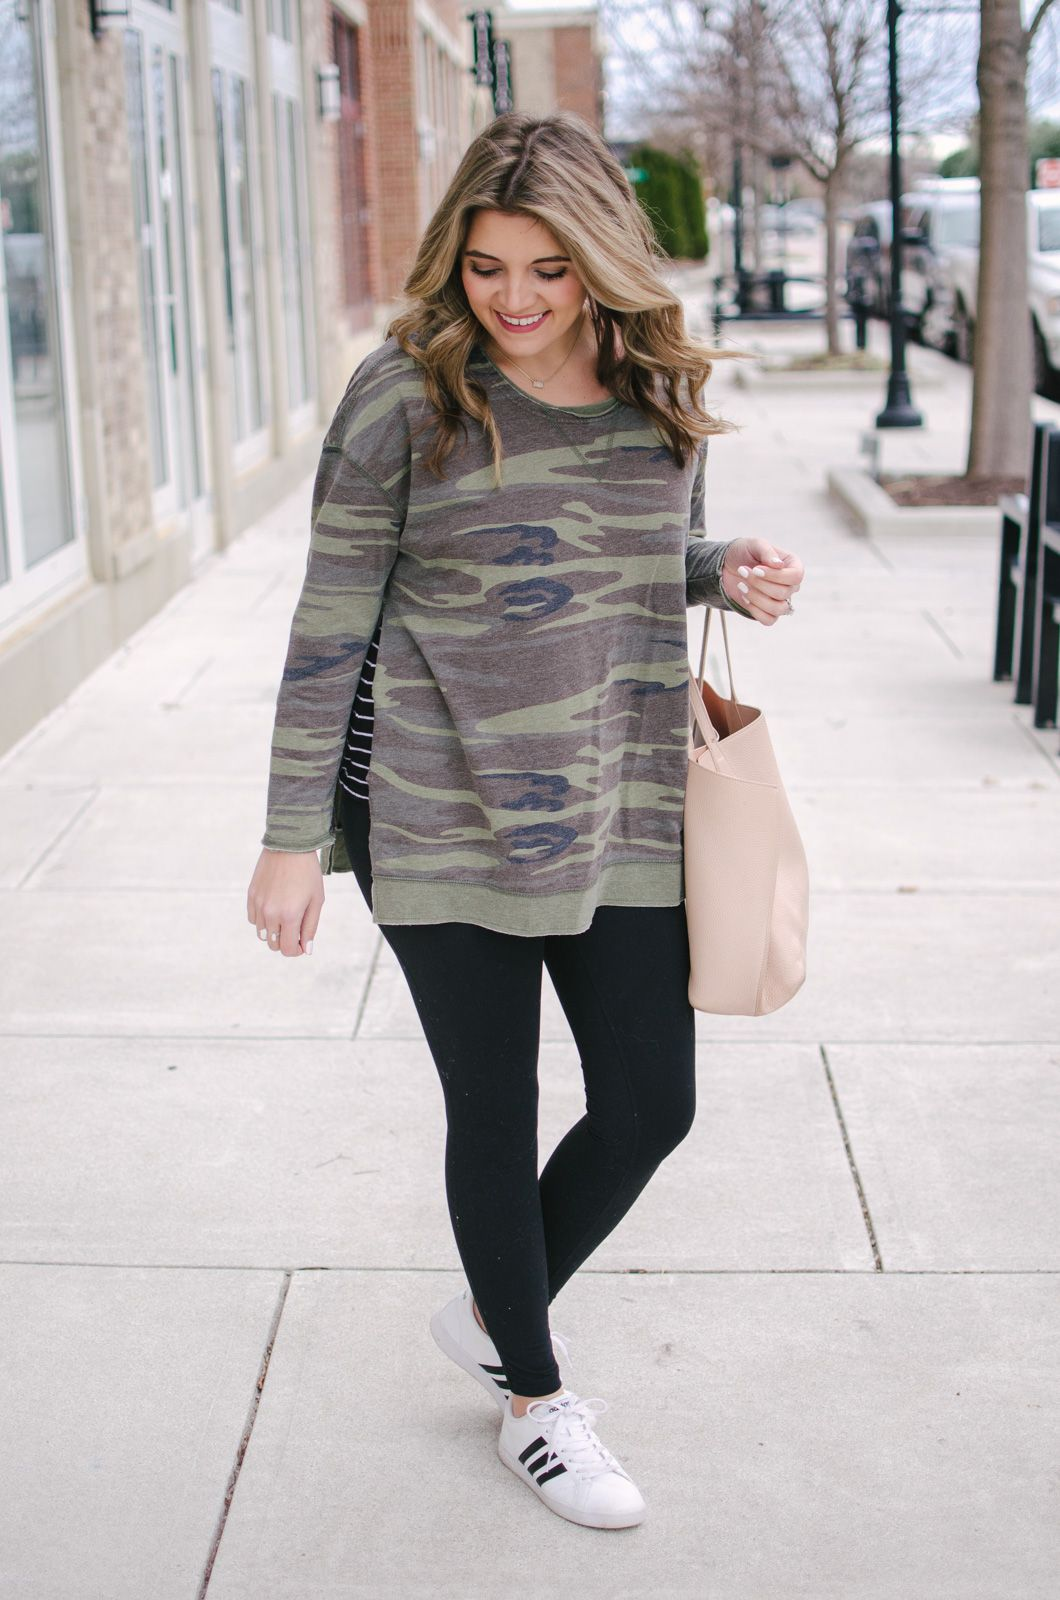 Current Fav Winter Leggings Outfit By Lauren M Plus Size Legging Outfits Outfits With Leggings Casual Plus Size Outfits